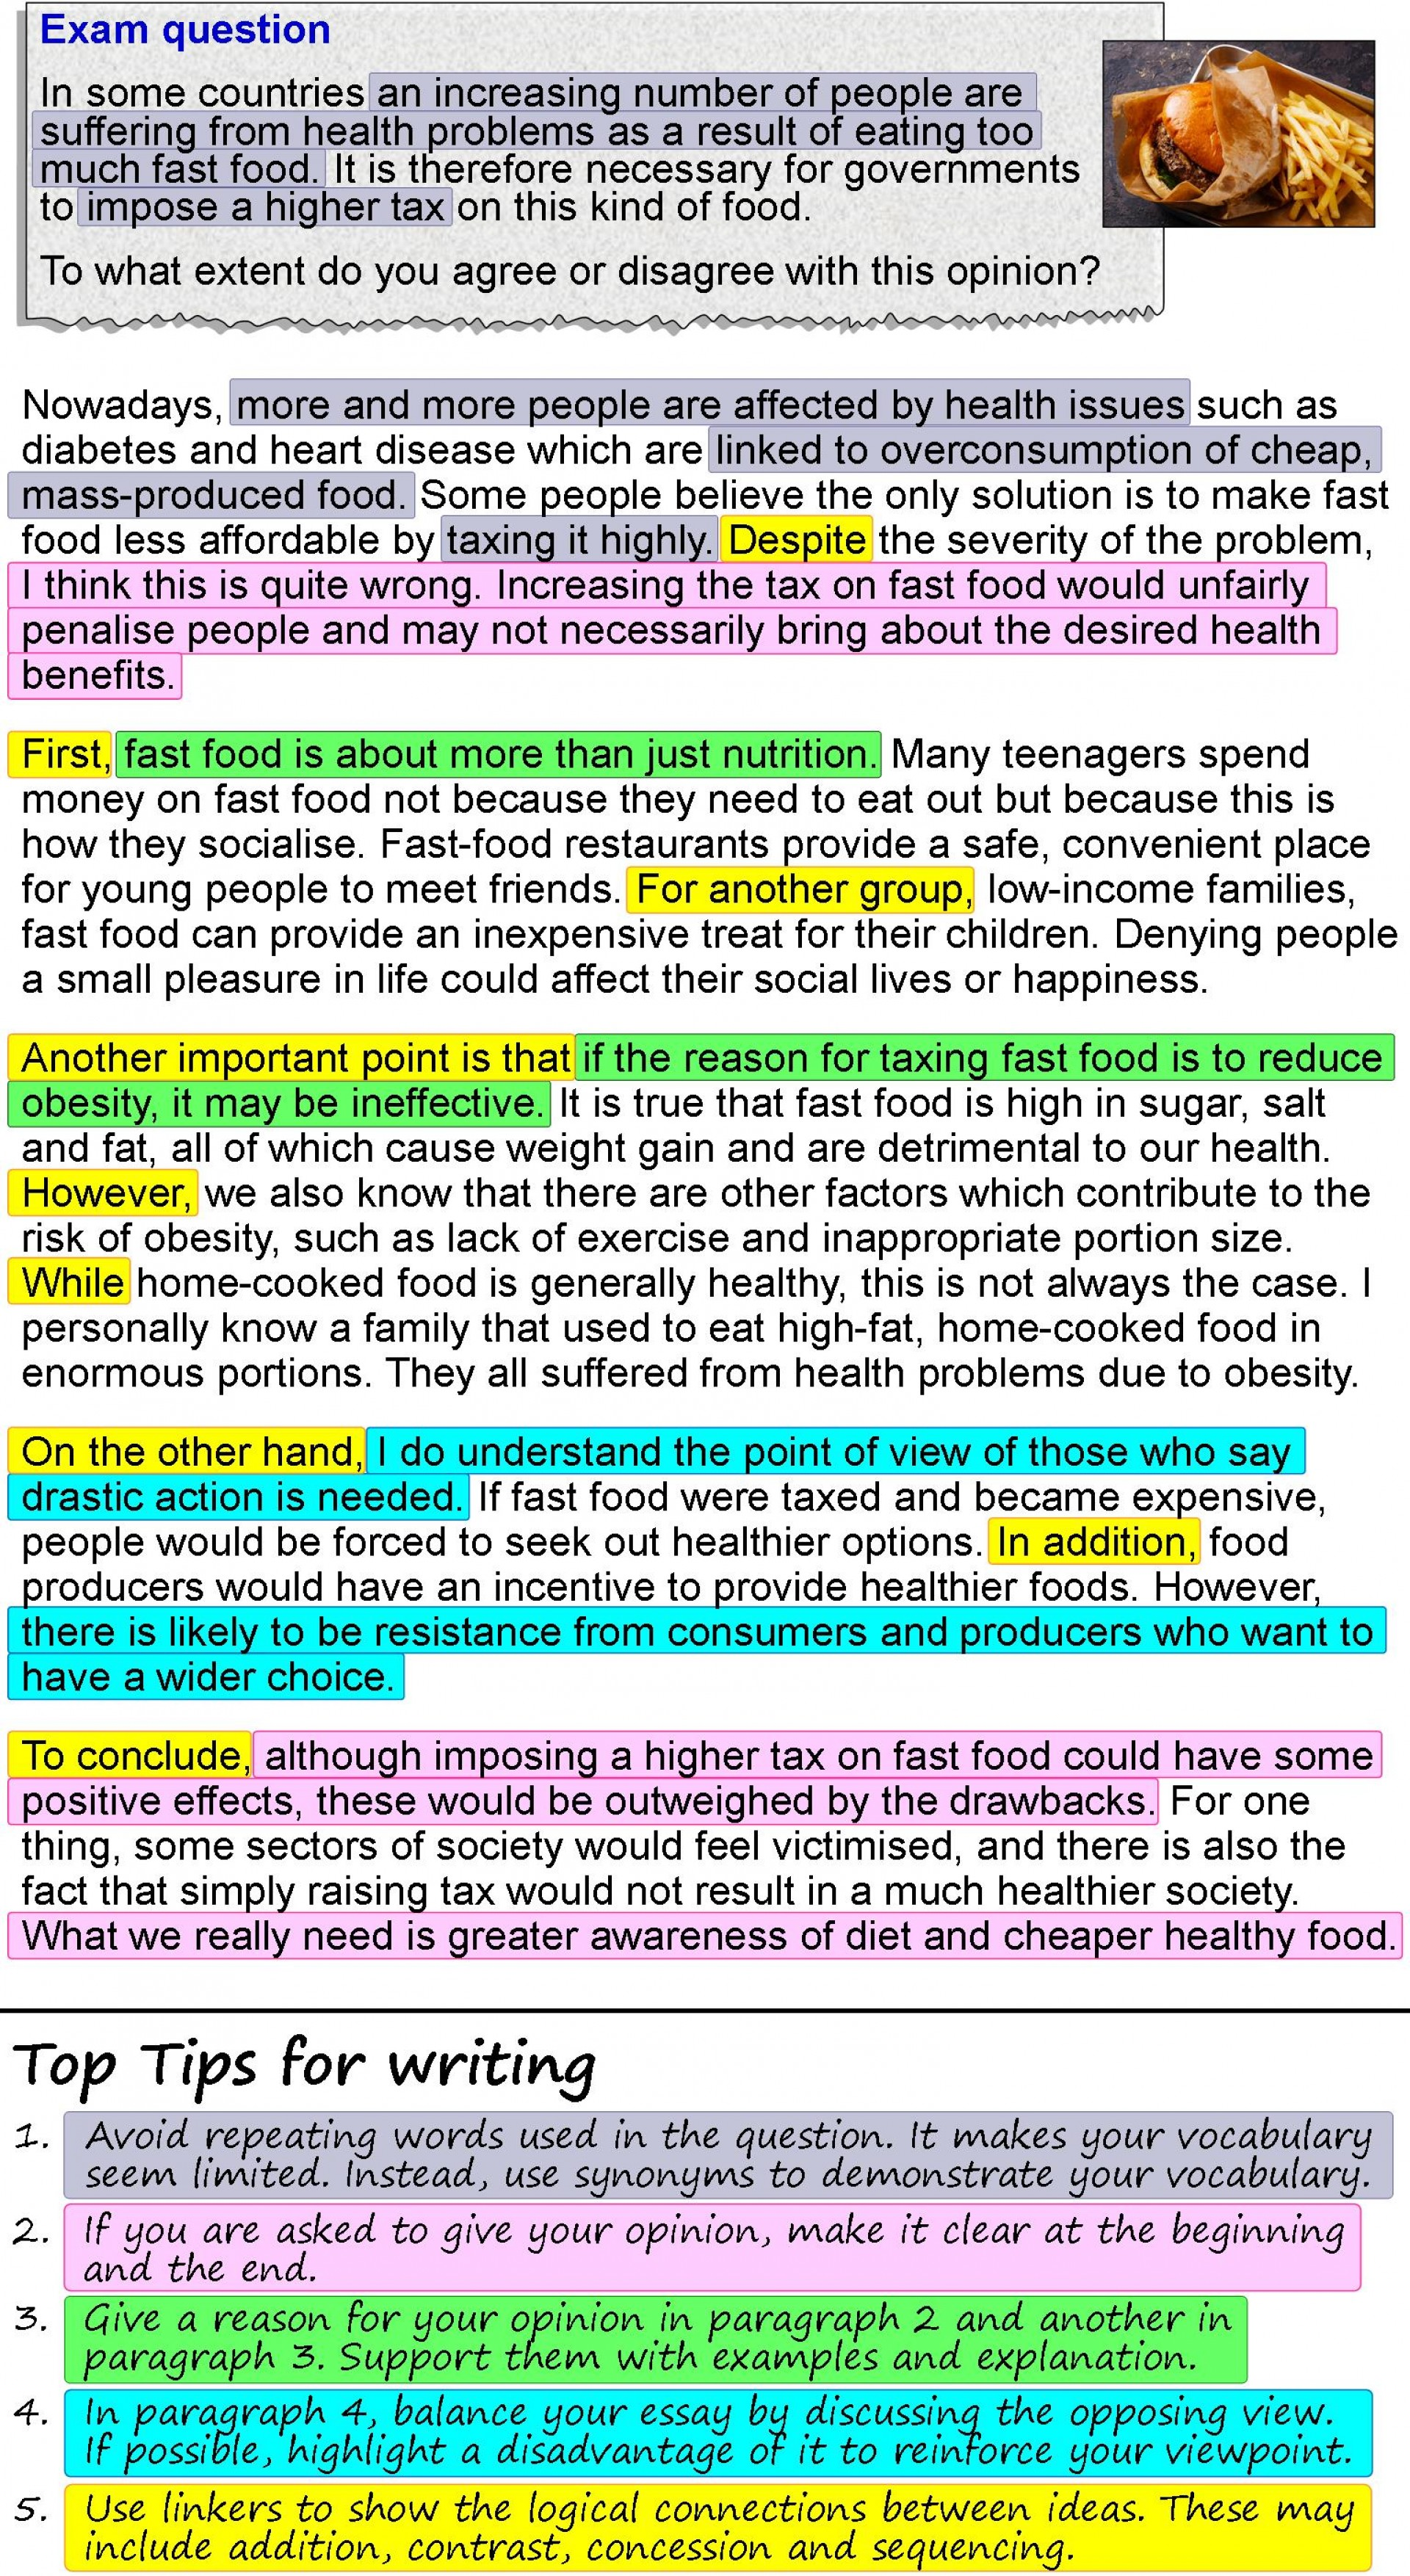 008 An Opinion Essay About Fast Food 4 Example Healthy Impressive Eating Topics Spm Habits Pdf 1920